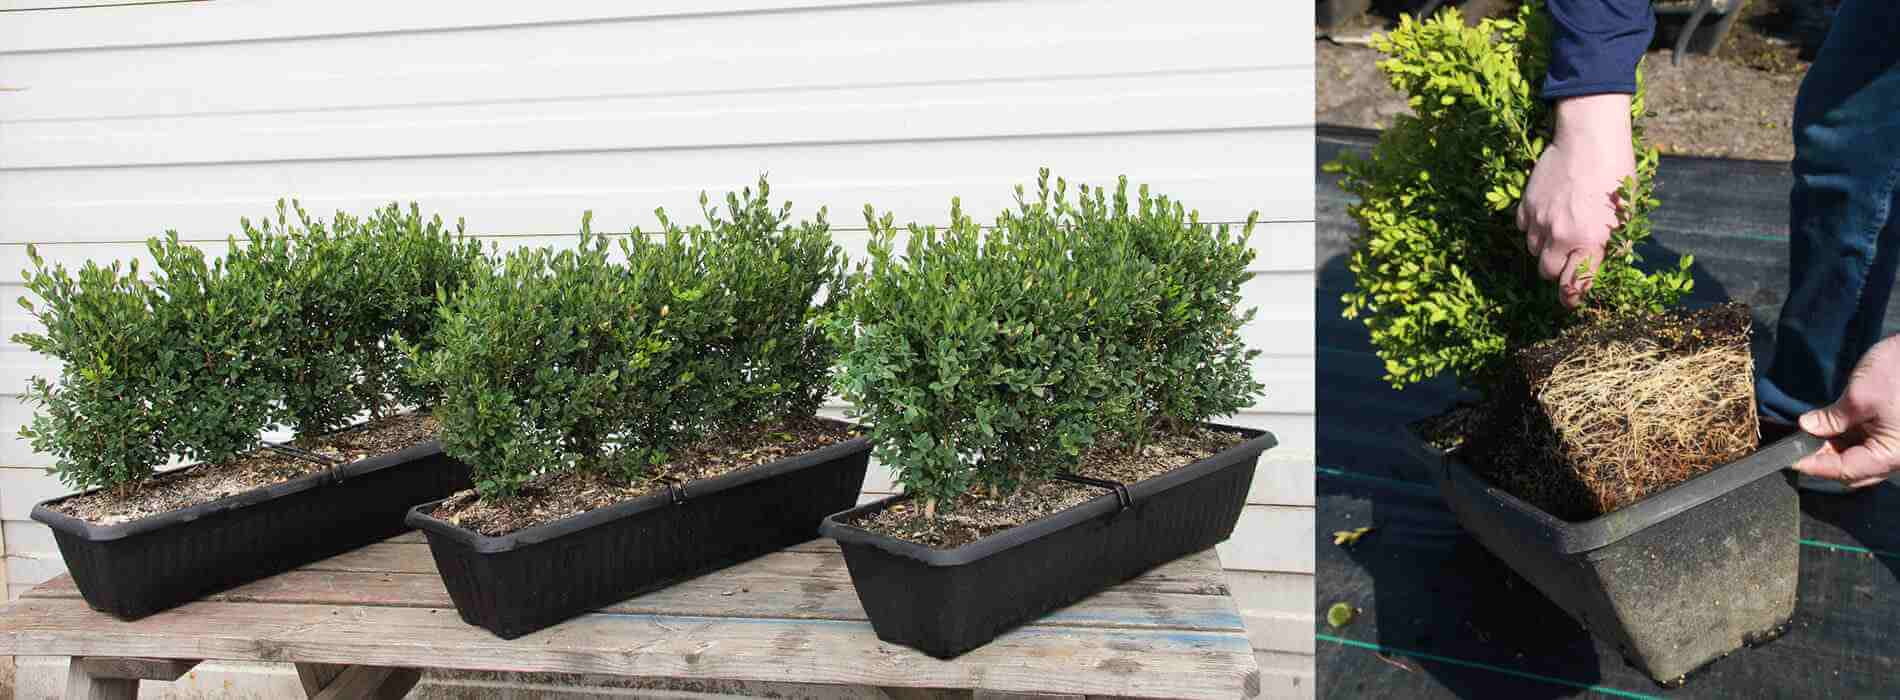 boxwood hedge plants (Buxus)